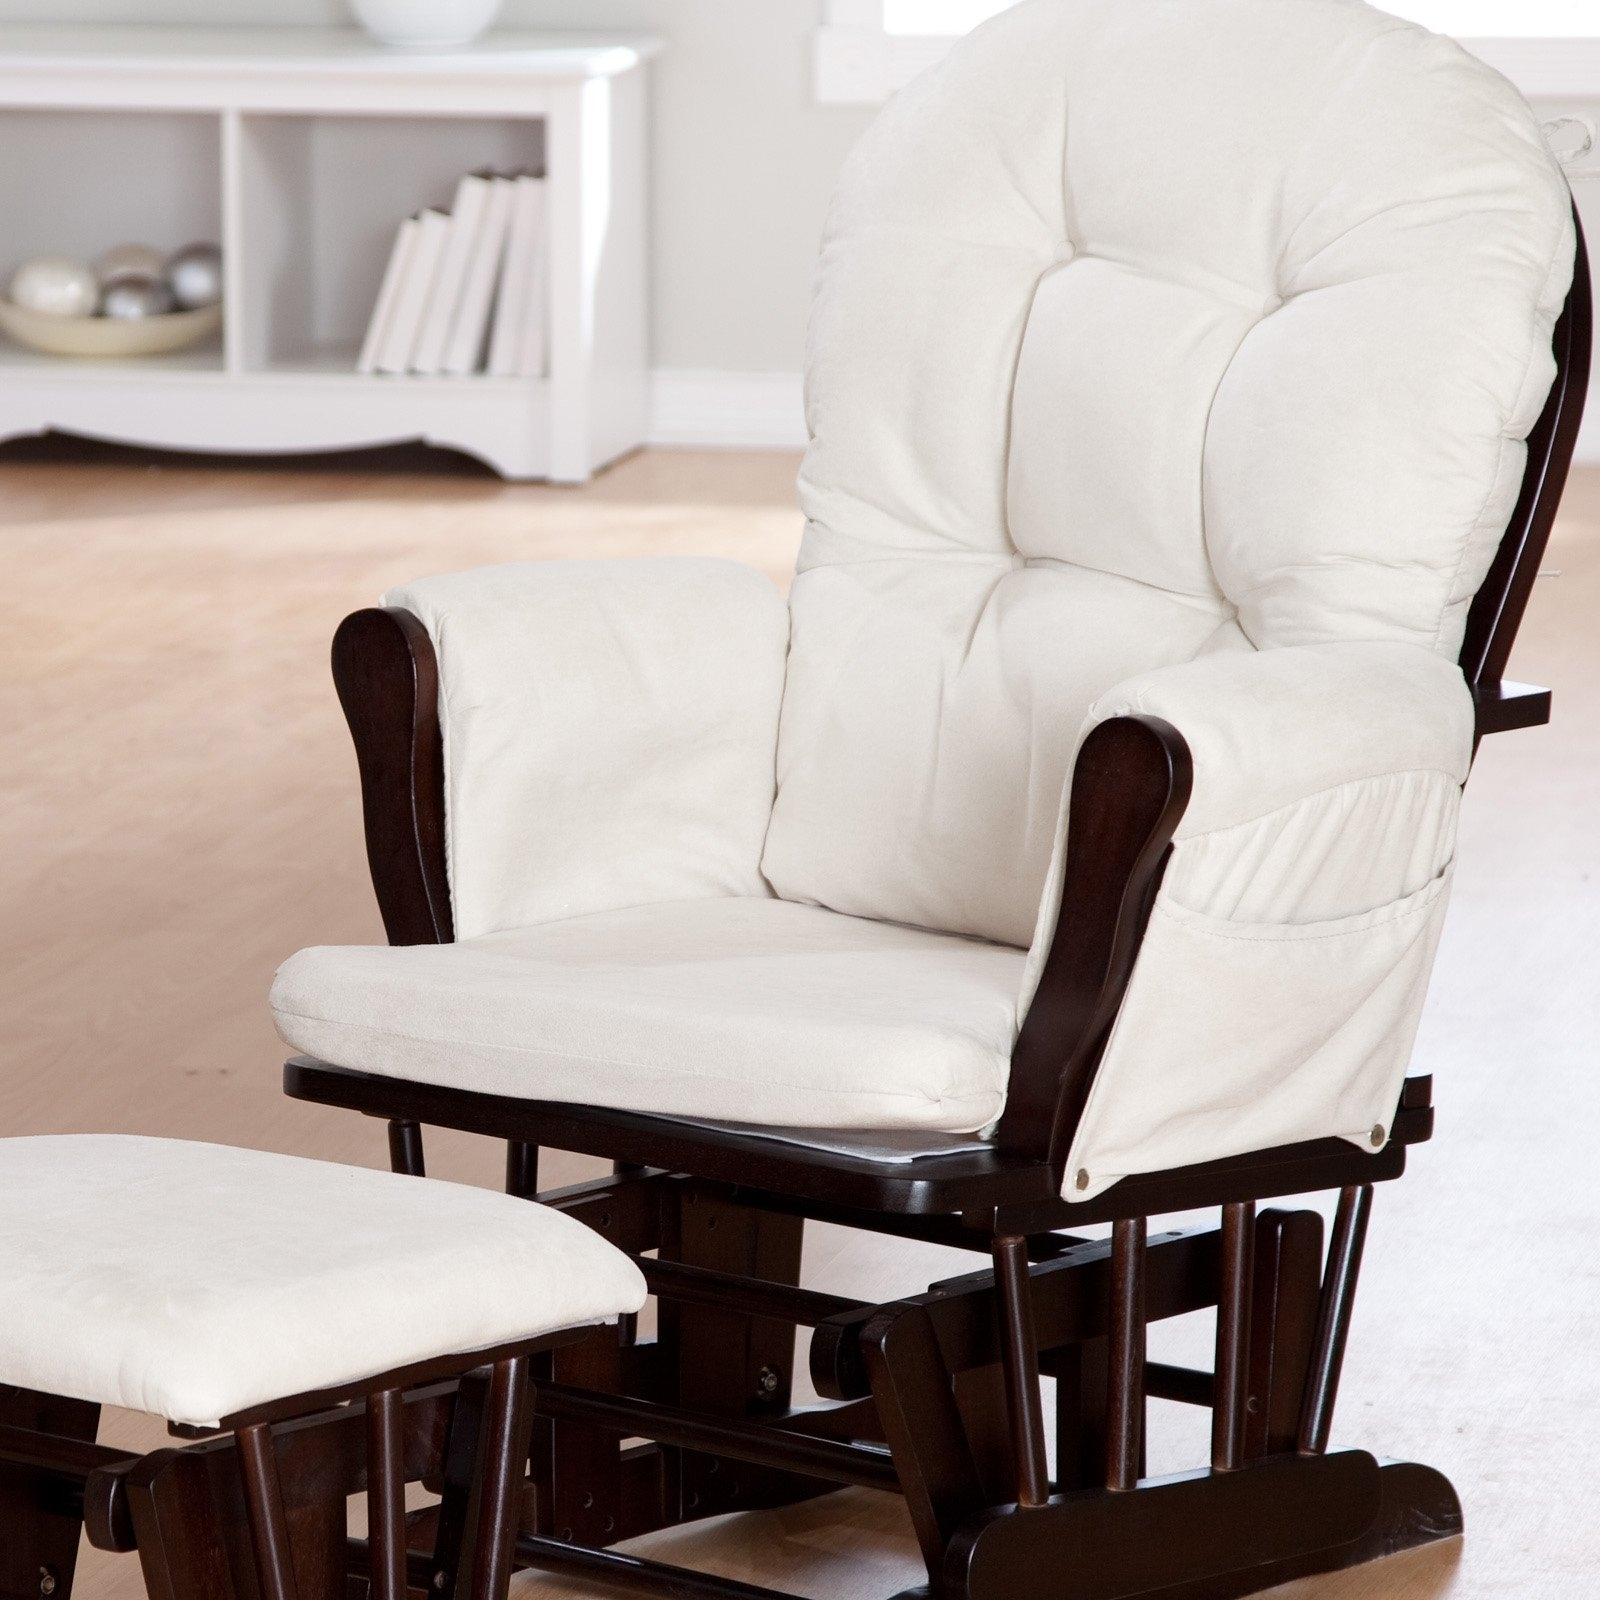 Trendy Storkcraft Bowback Glider And Ottoman Set – Espresso/beige (View 18 of 20)